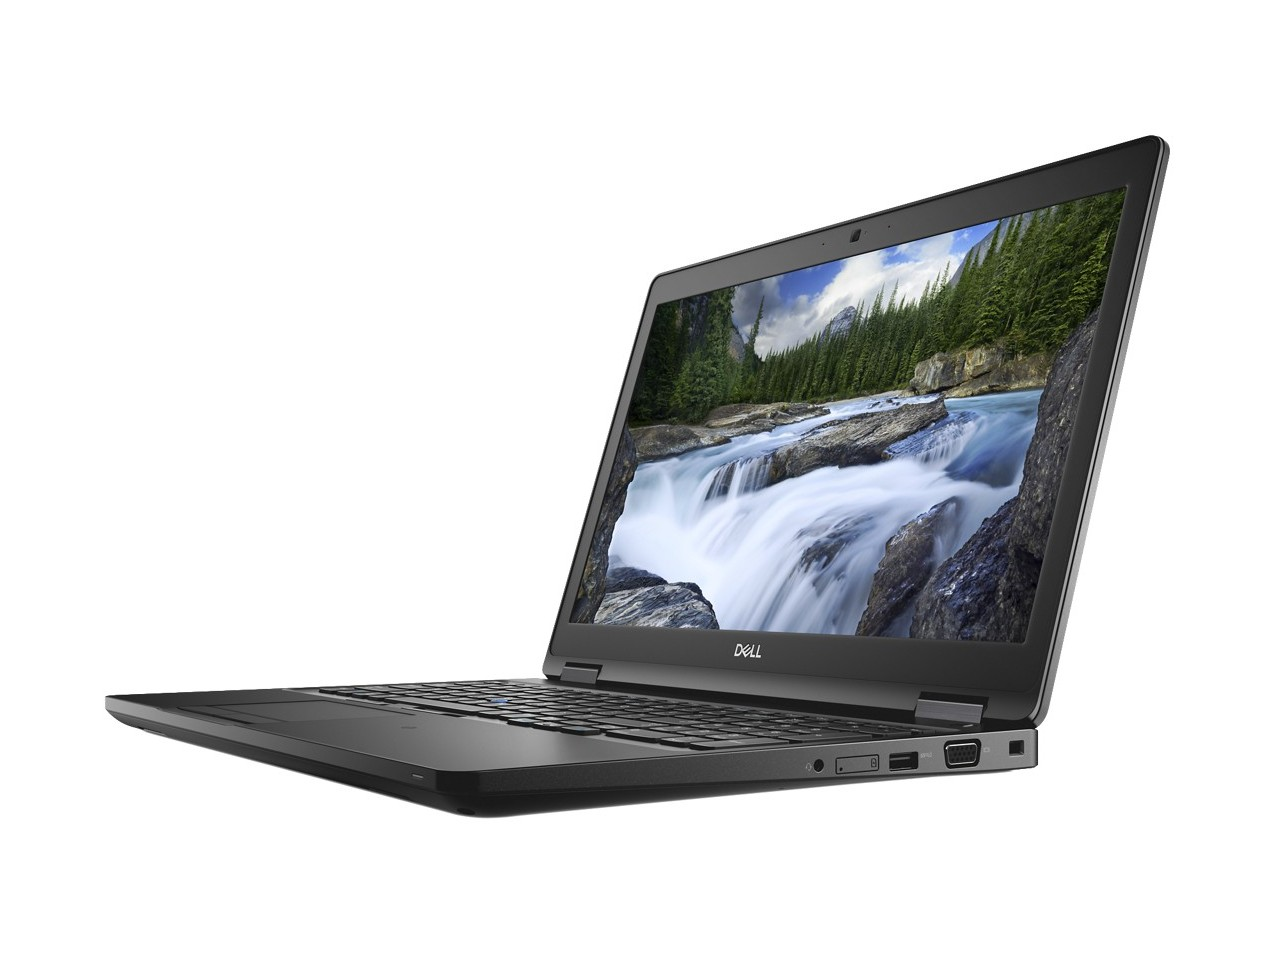 Notebook Dell Latitude 5591 15.6 Full HD Intel Core i5-8400H RAM 8GB SSD 256GB Windows 10 Pro